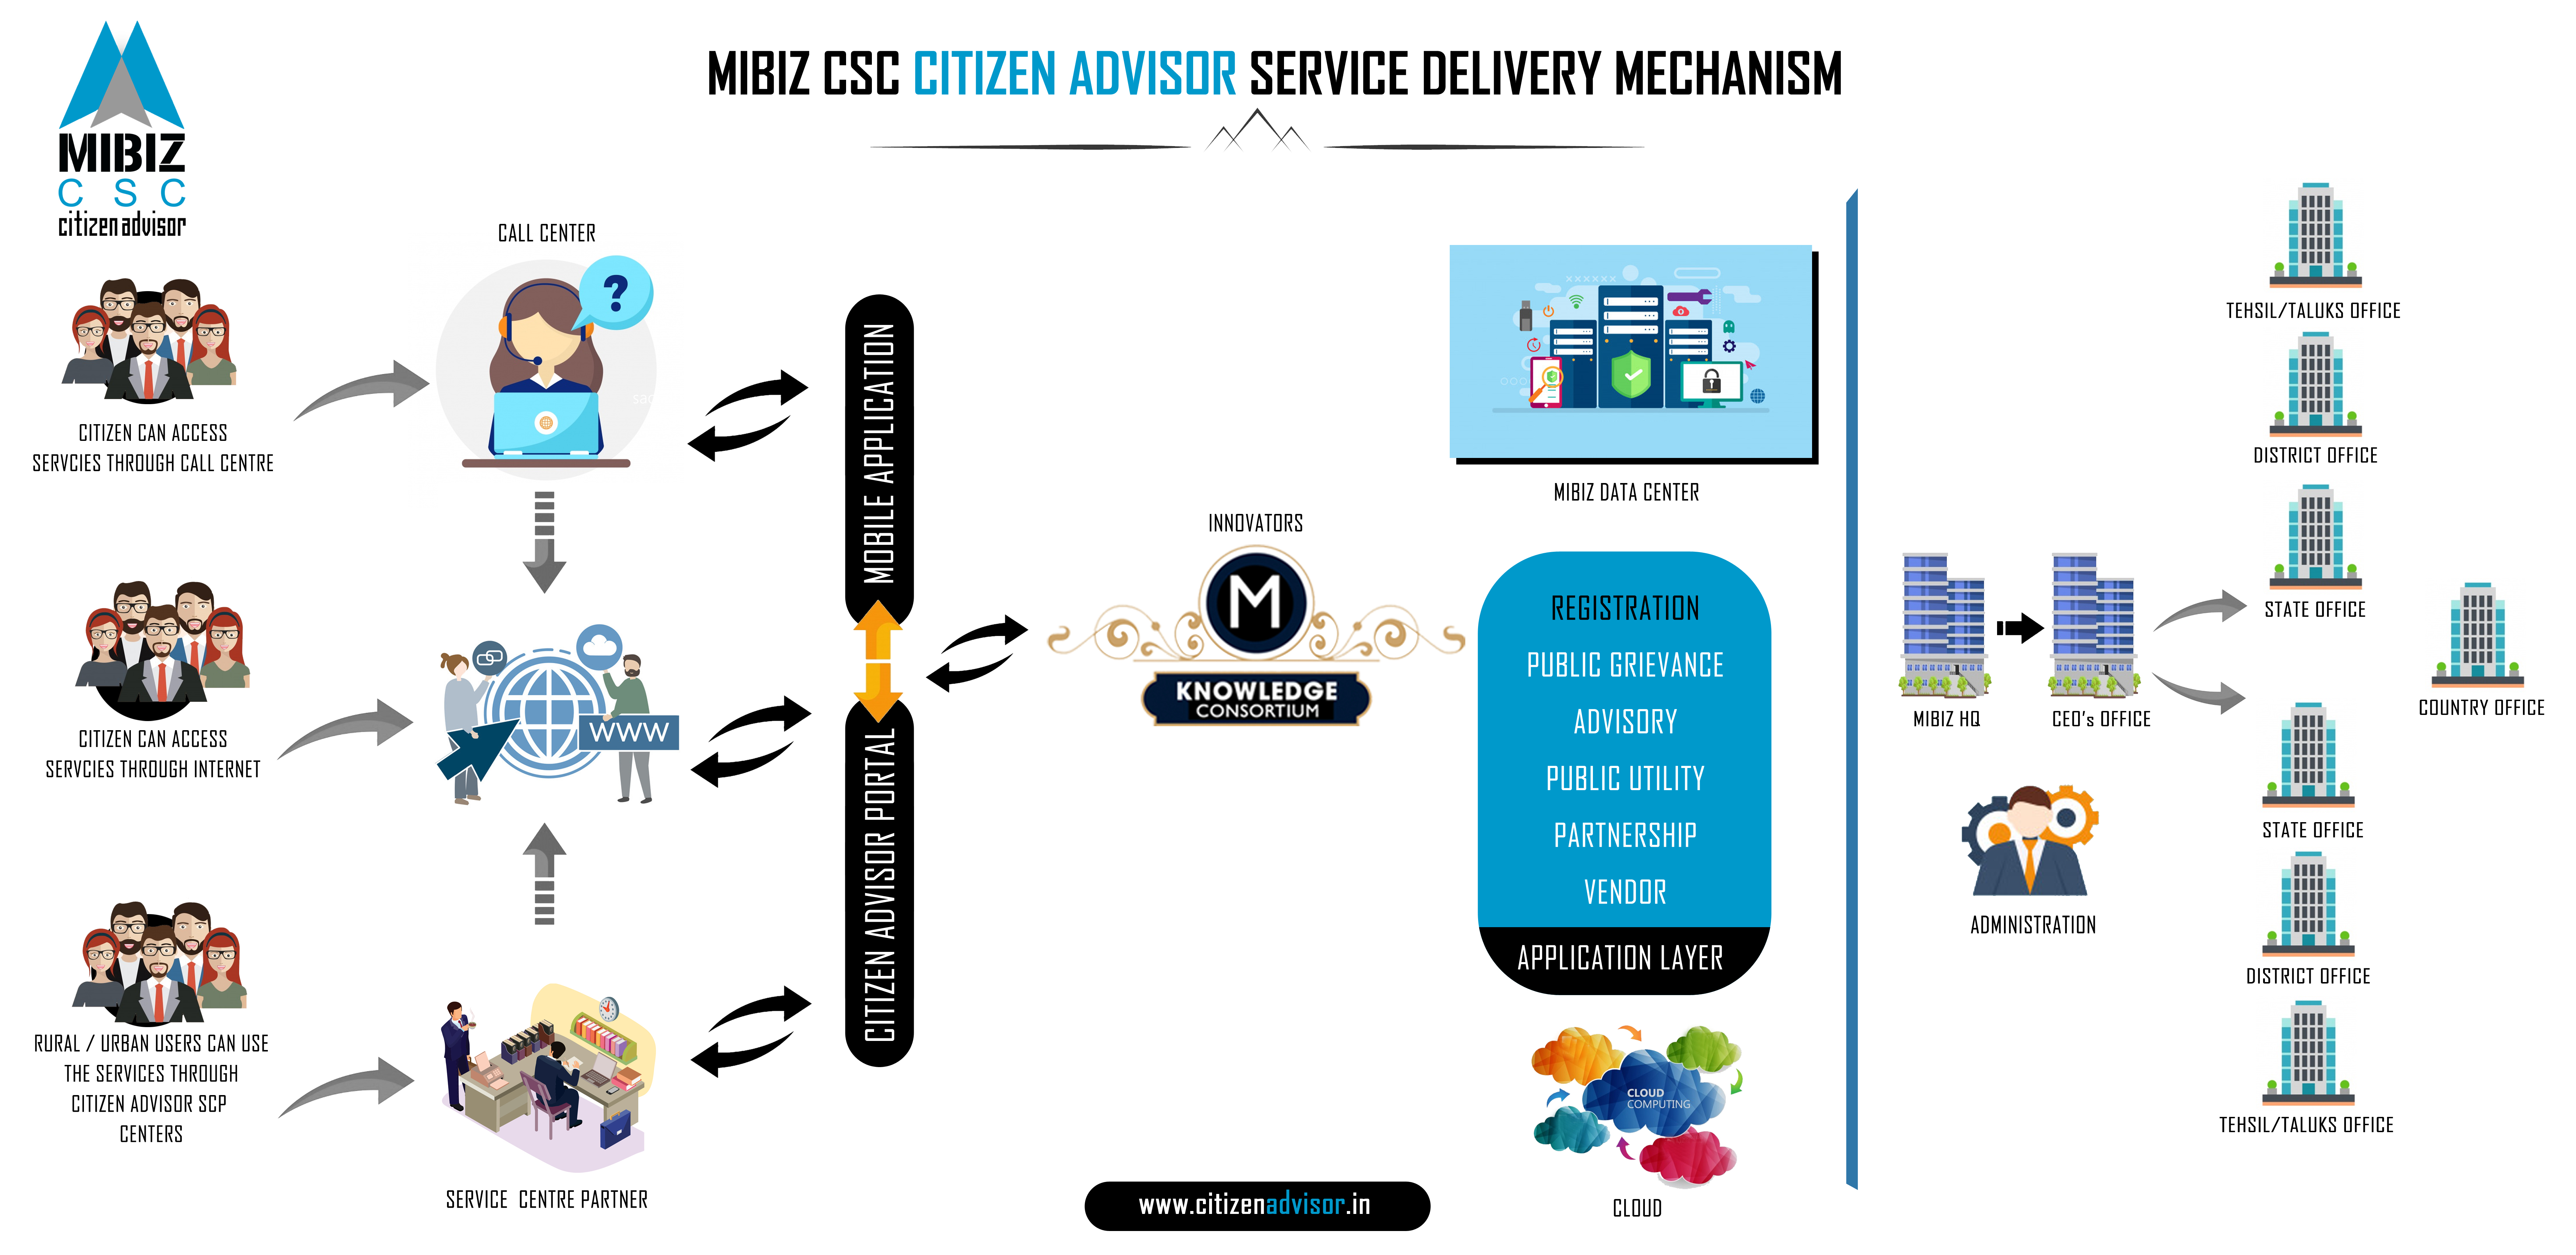 Citizen advisor e-Services platform